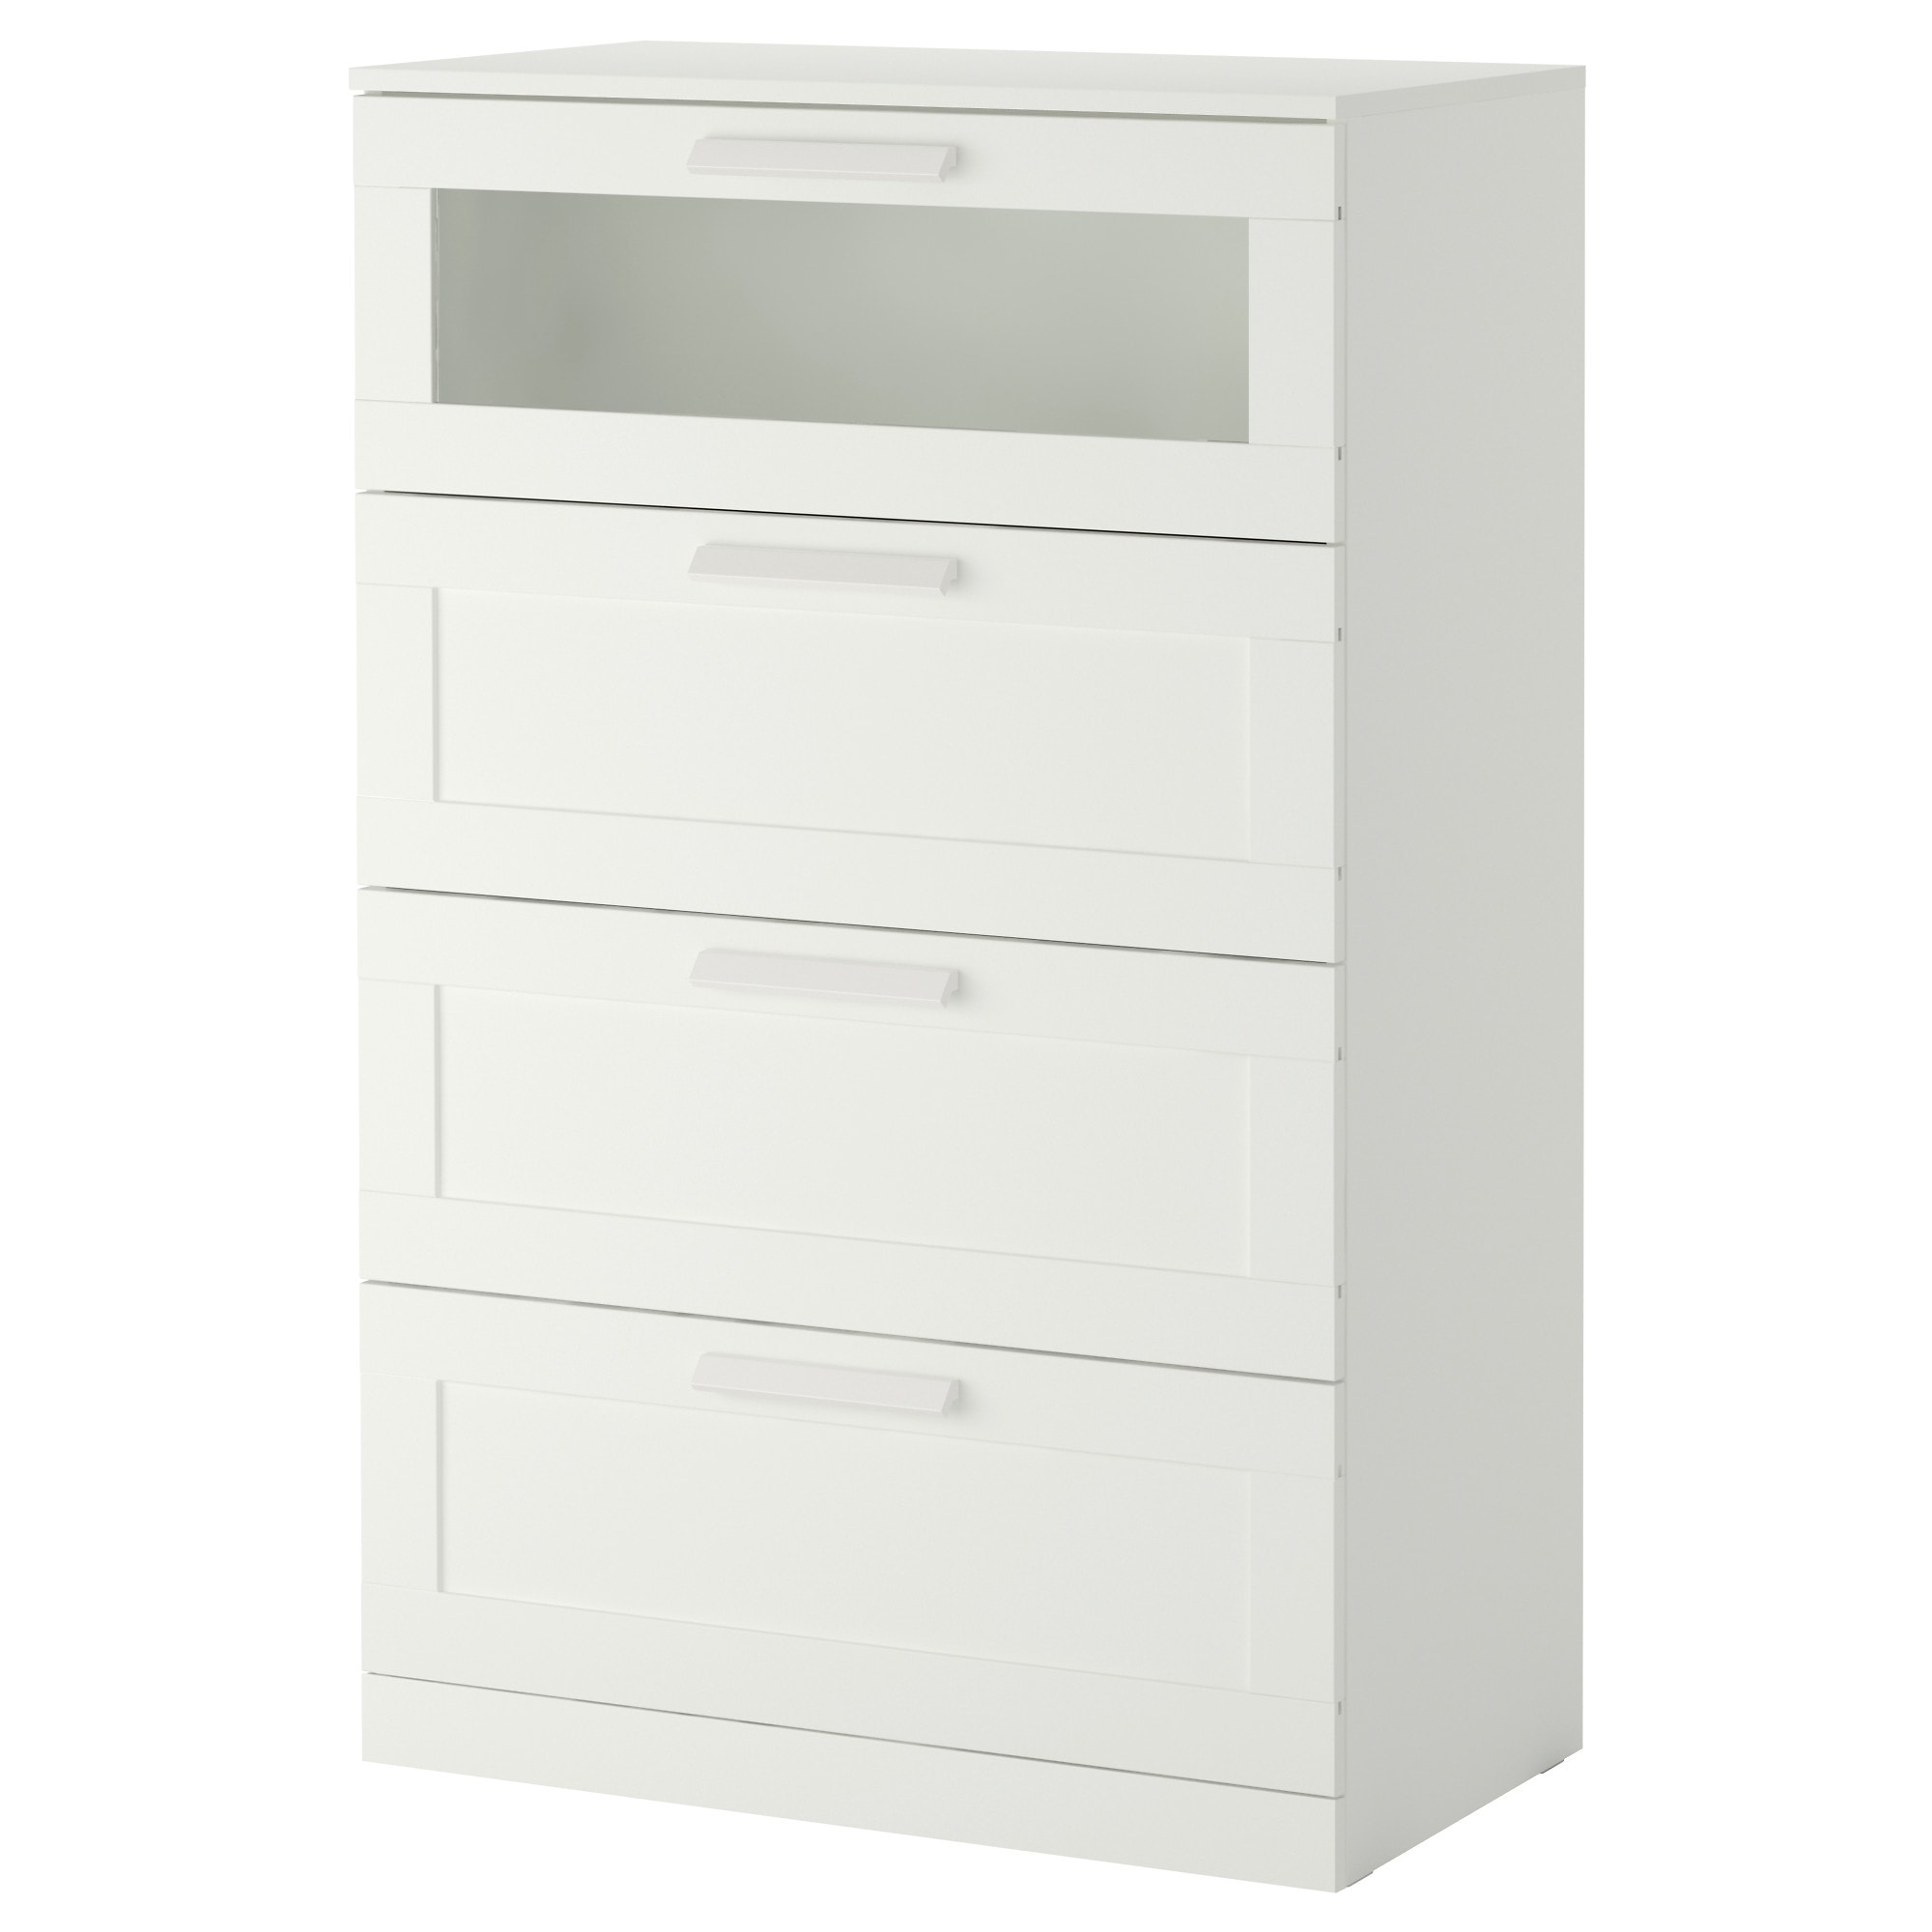 . BRIMNES 4 drawer dresser   white frosted glass   IKEA